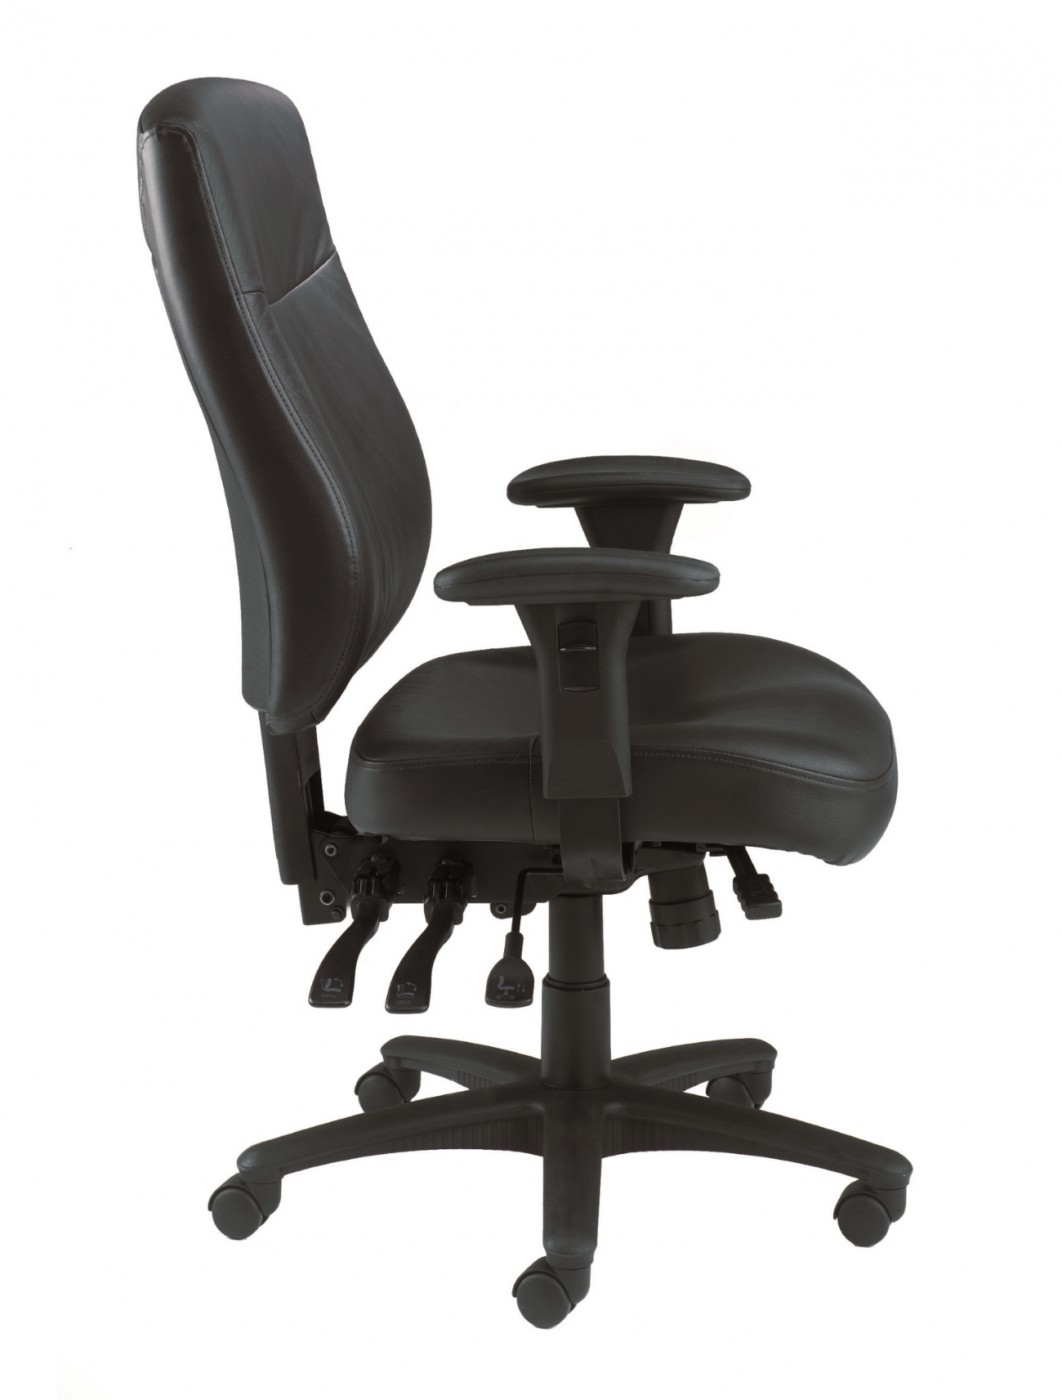 cgtrader chairs model chair modern obj leather office max fbx furniture mtl models